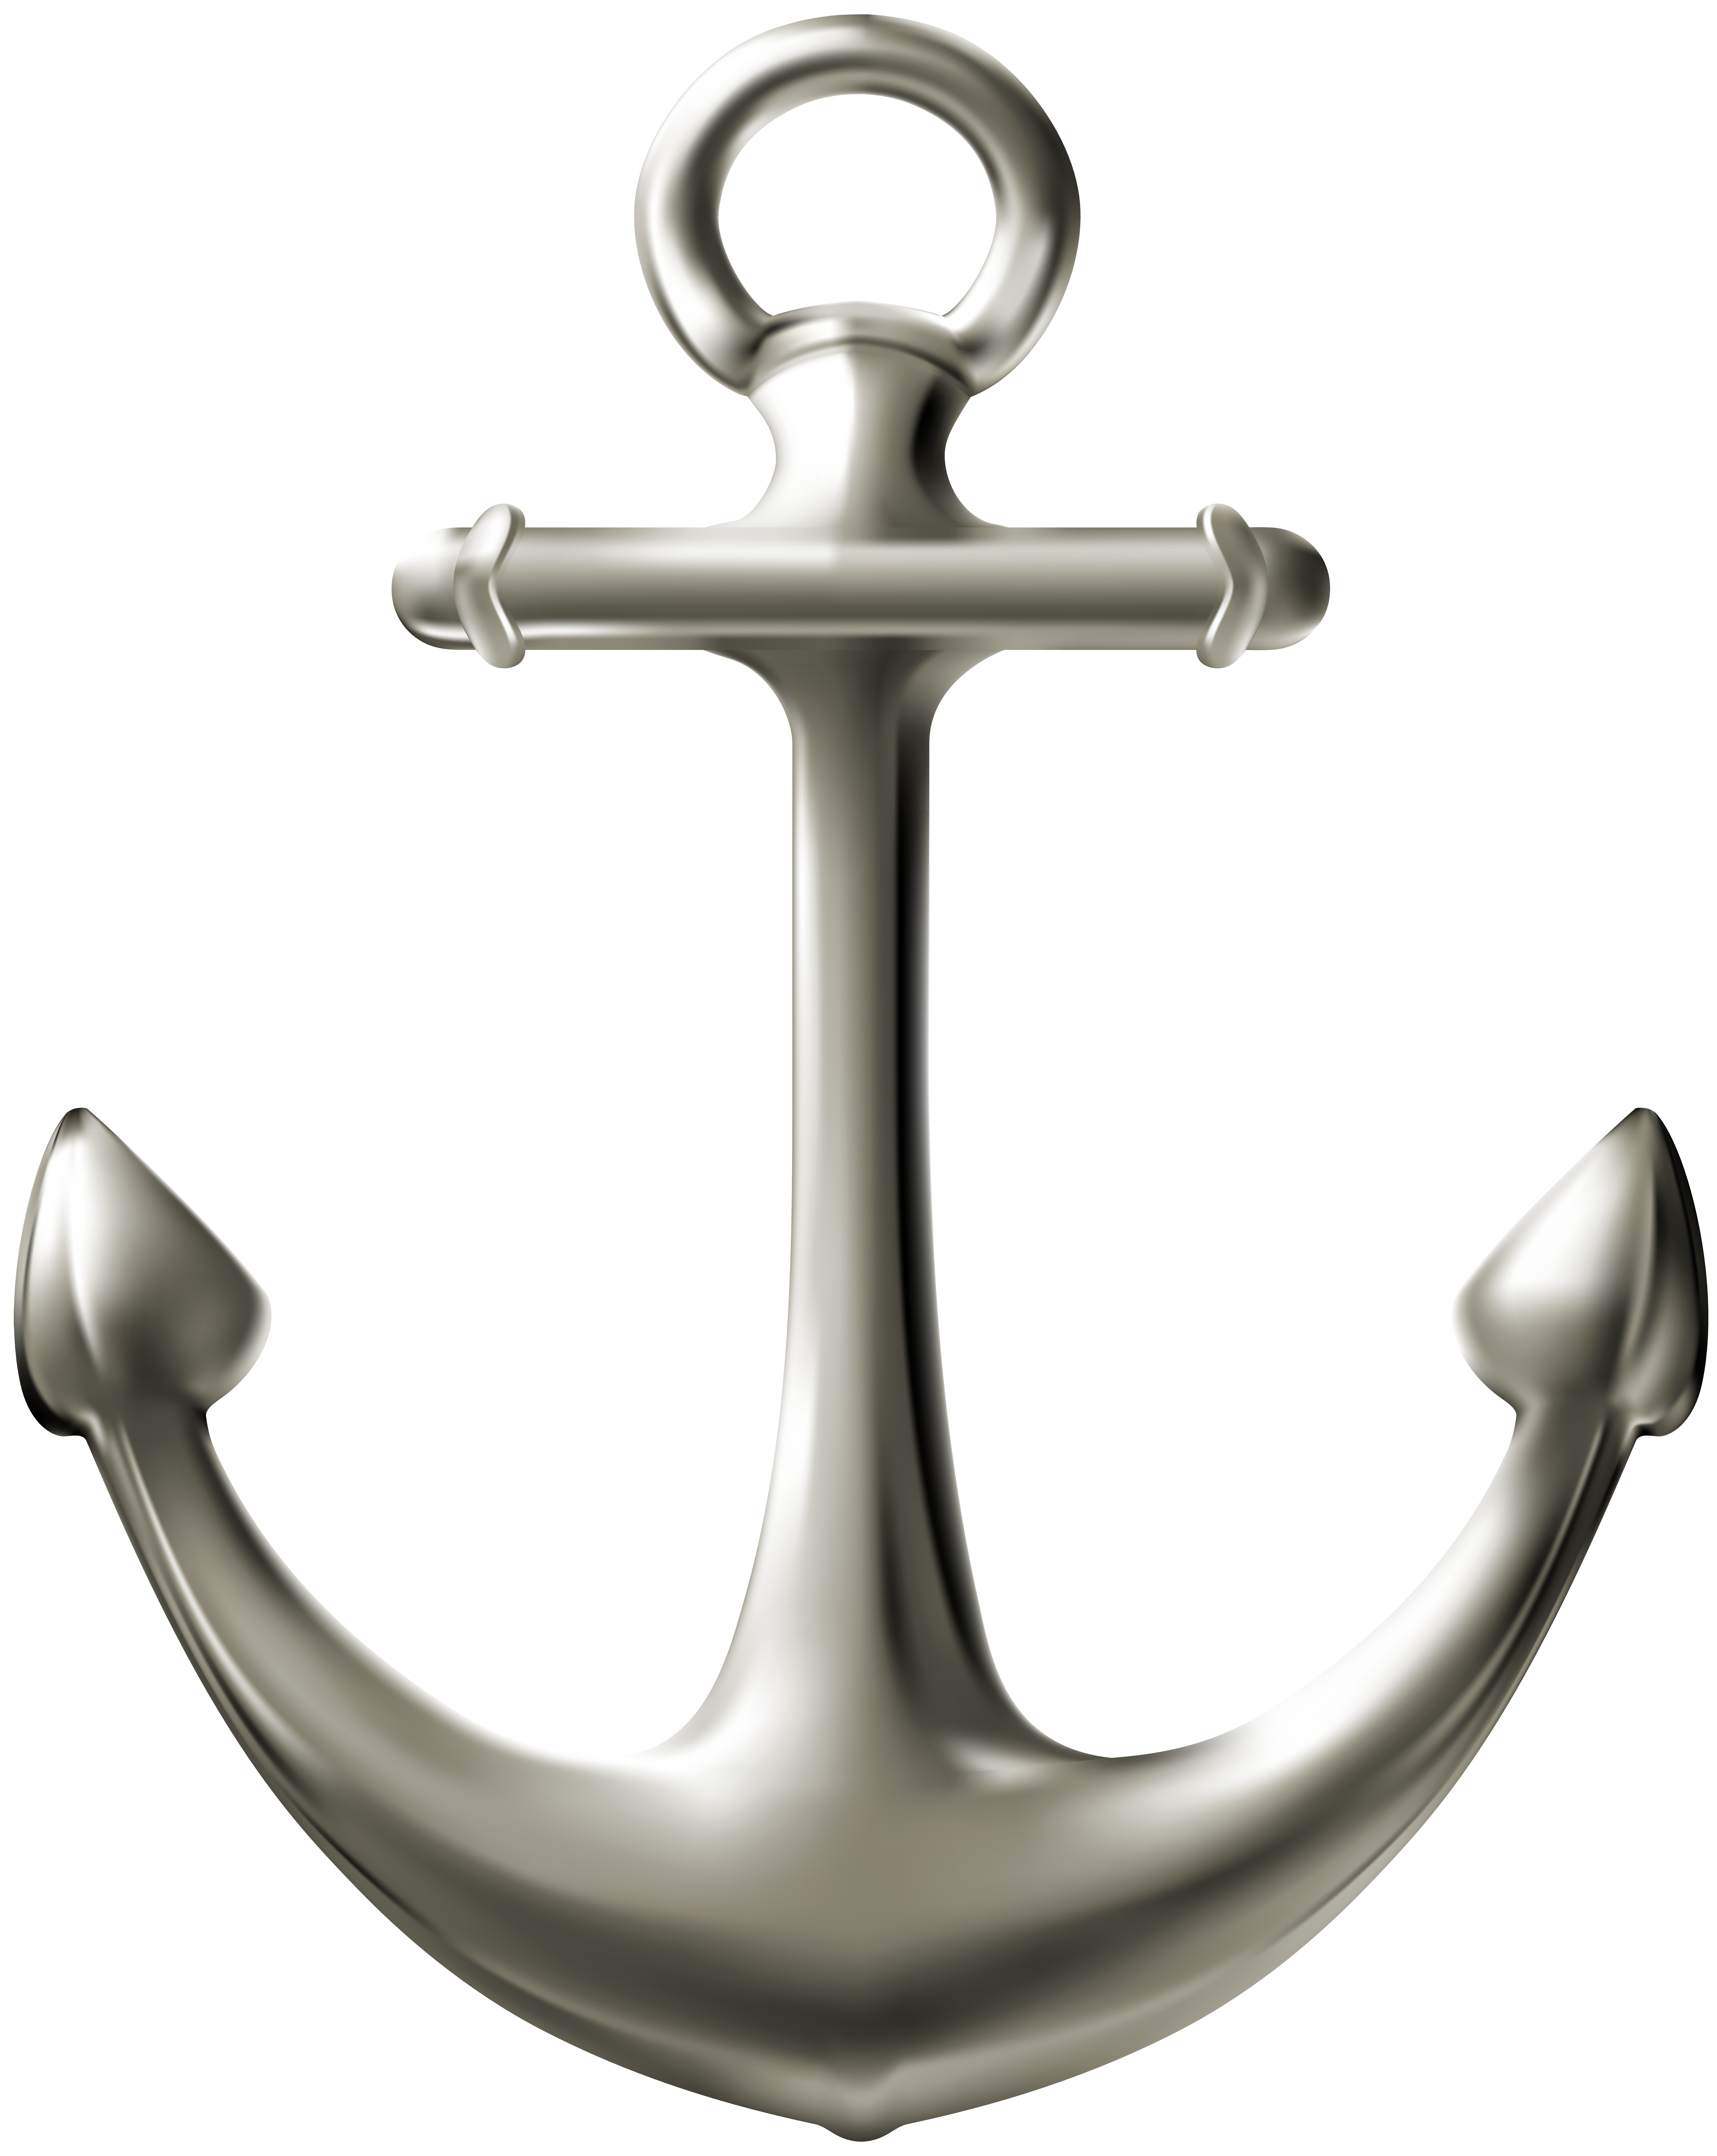 Clipart anchor banner. Png clip art image